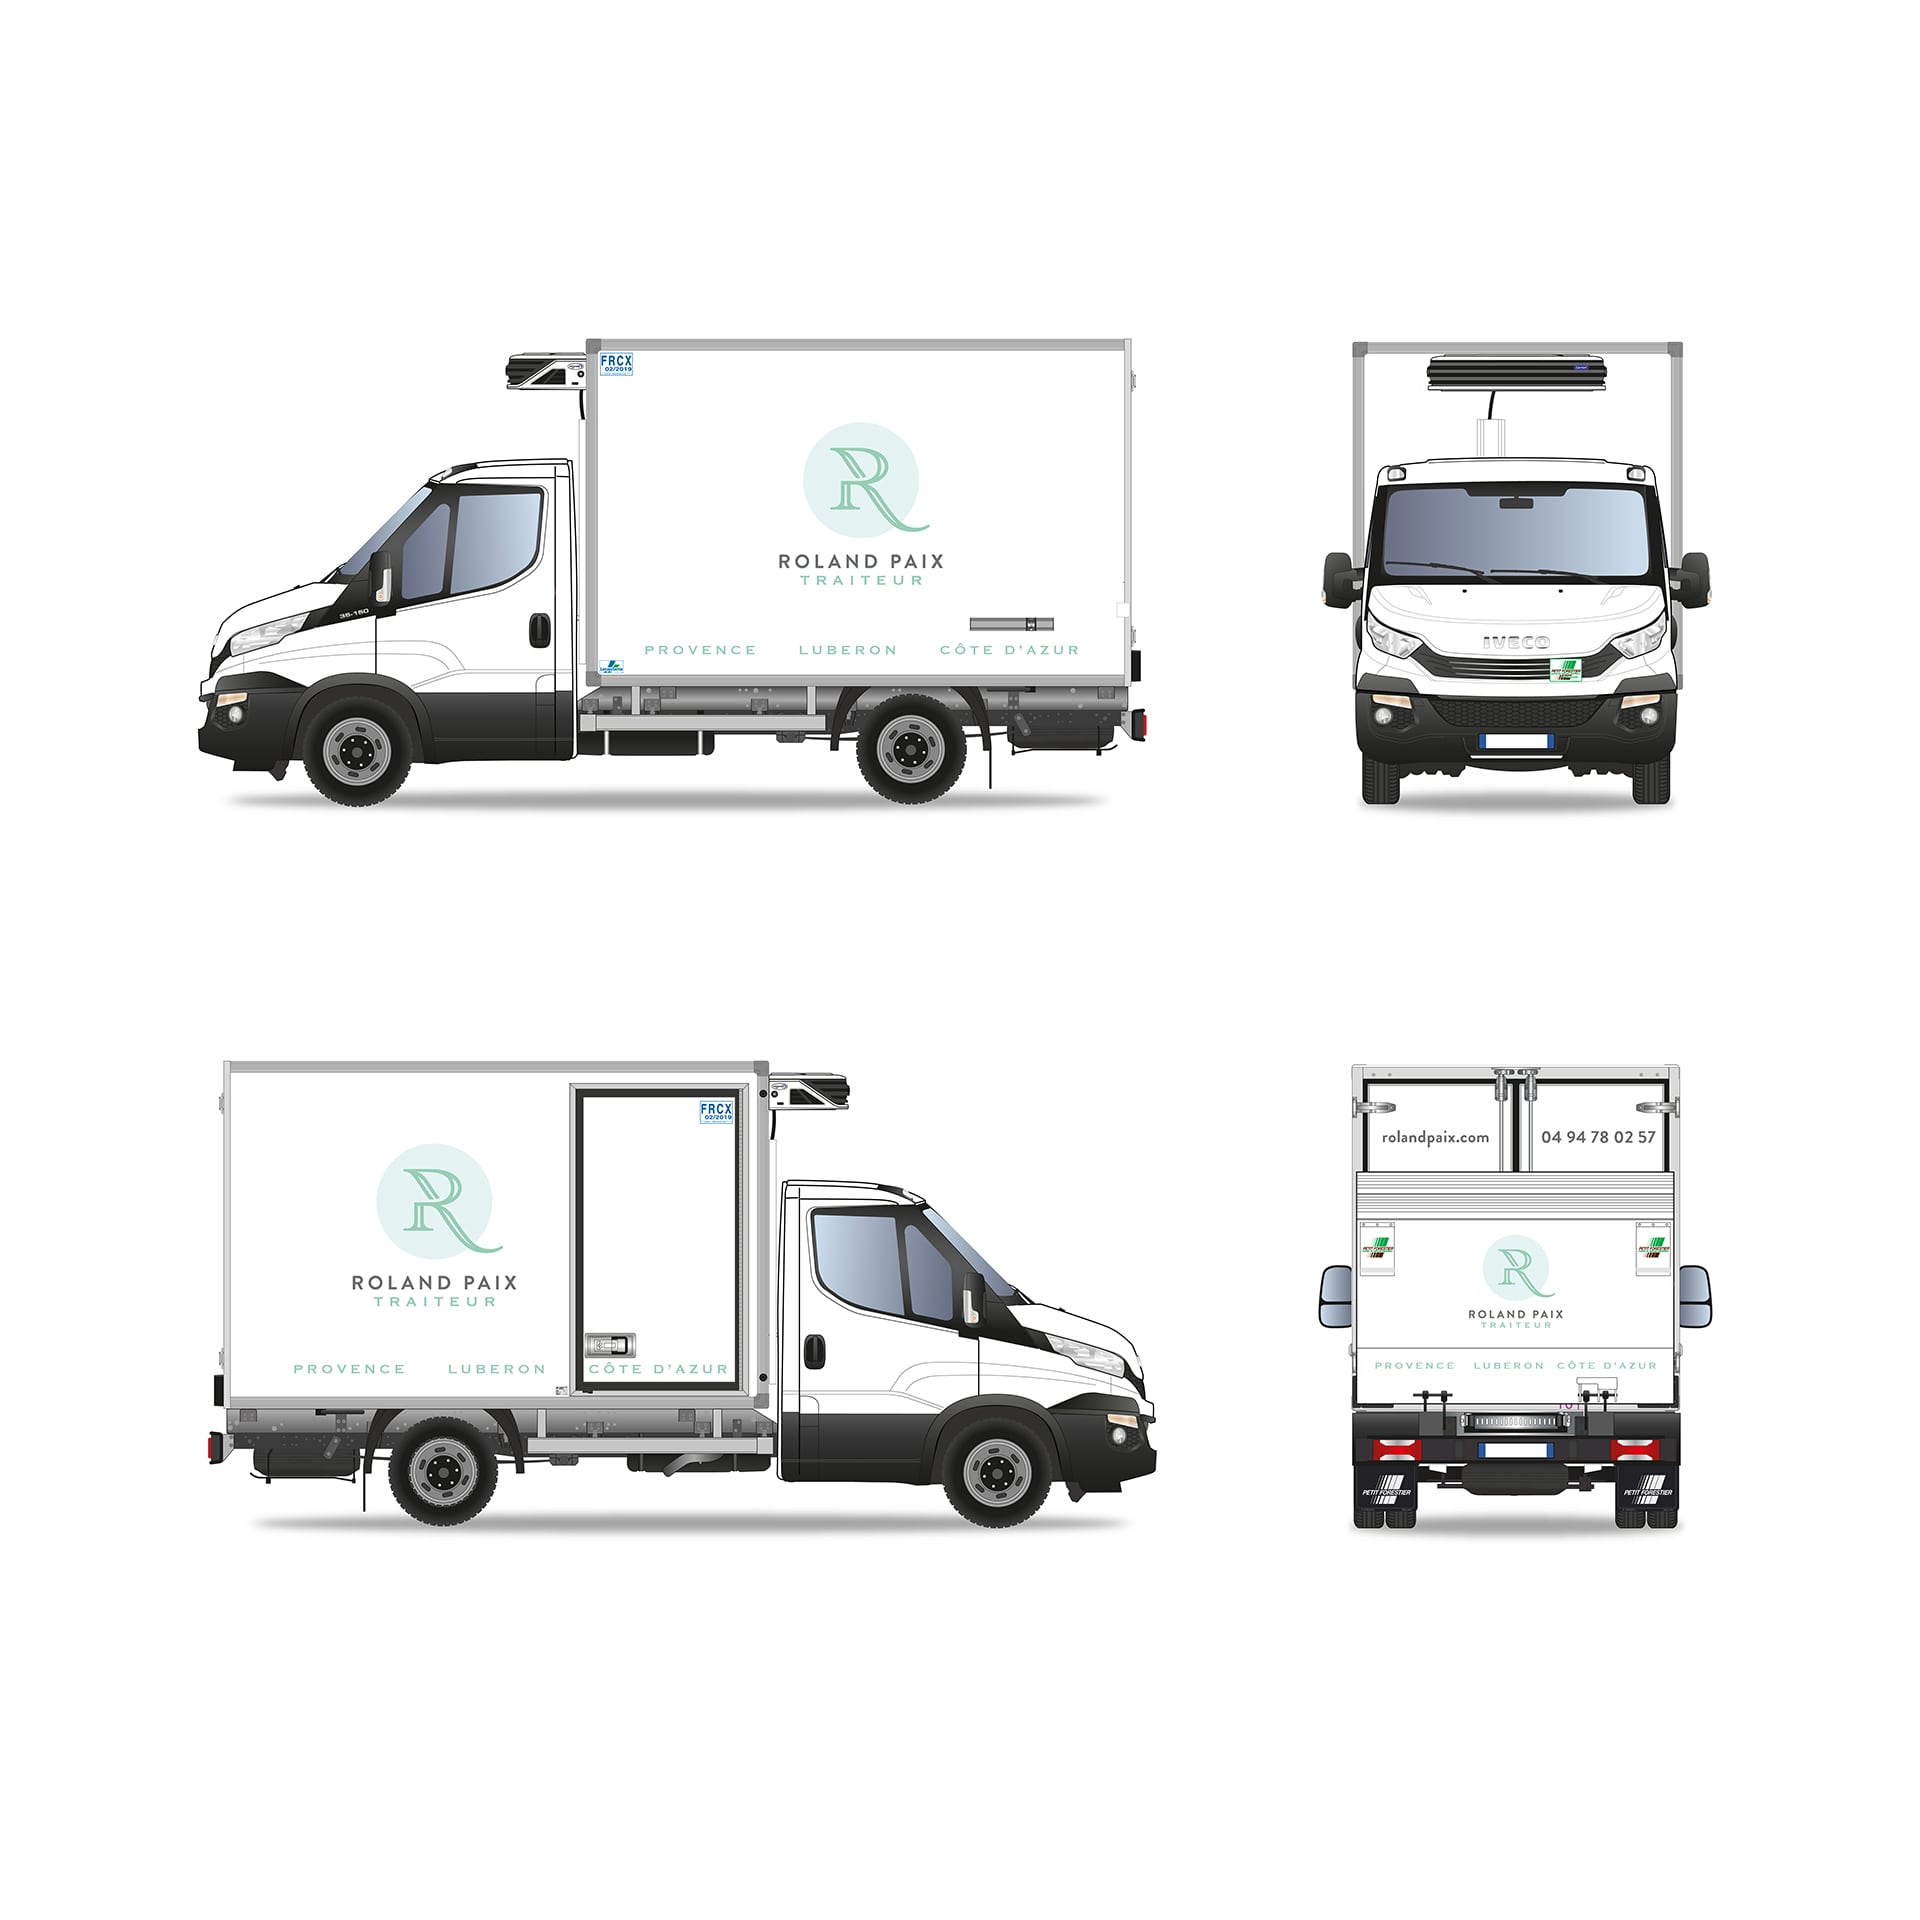 Camion_covering_Roland_Paix